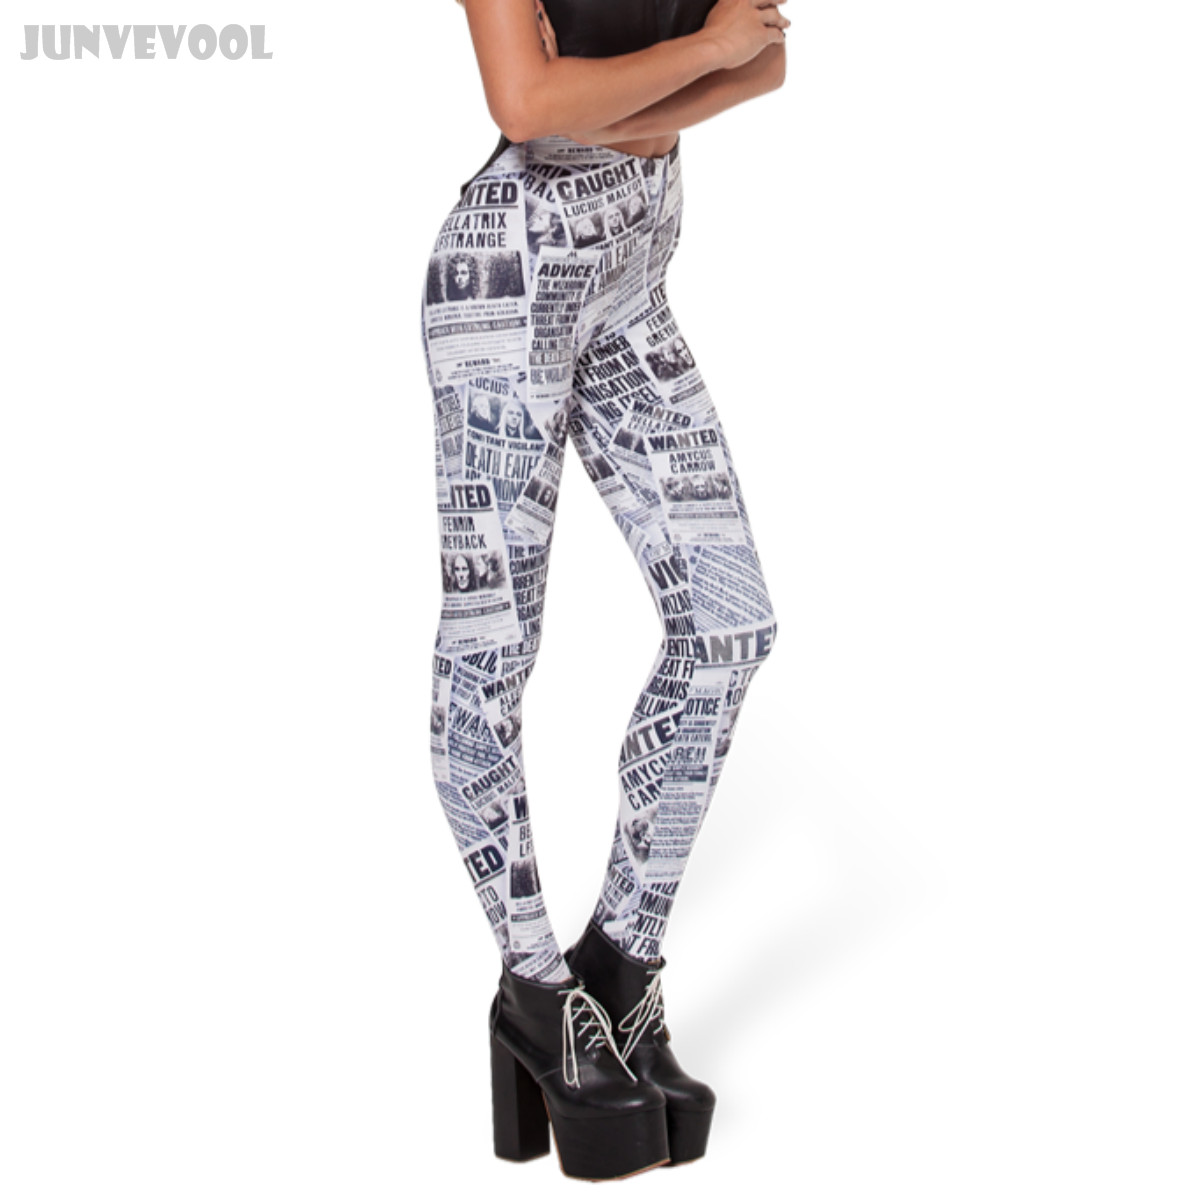 9efb9163df62f Star Leggings Newspaper Printed Women's Black & White News Reported Printed  Stretch Skinny Elastic Trousers Slim Pencil Pants-in Leggings from Women's  ...